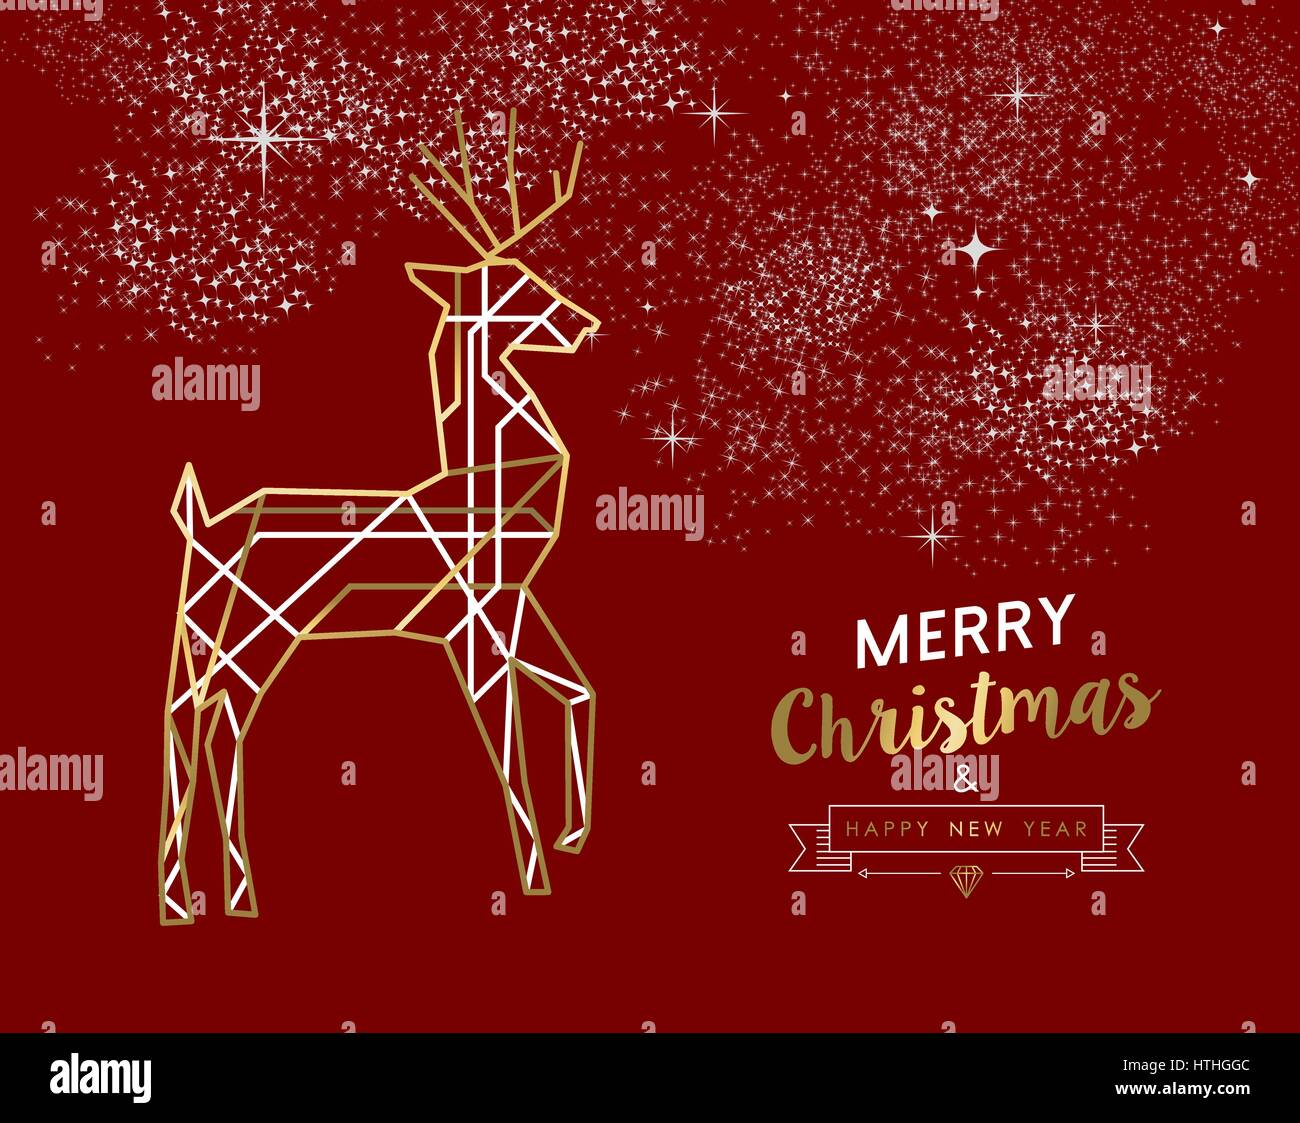 Merry christmas happy new year gold and red deer in outline art deco merry christmas happy new year gold and red deer in outline art deco style ideal for holiday greeting card xmas poster or web eps10 vector m4hsunfo